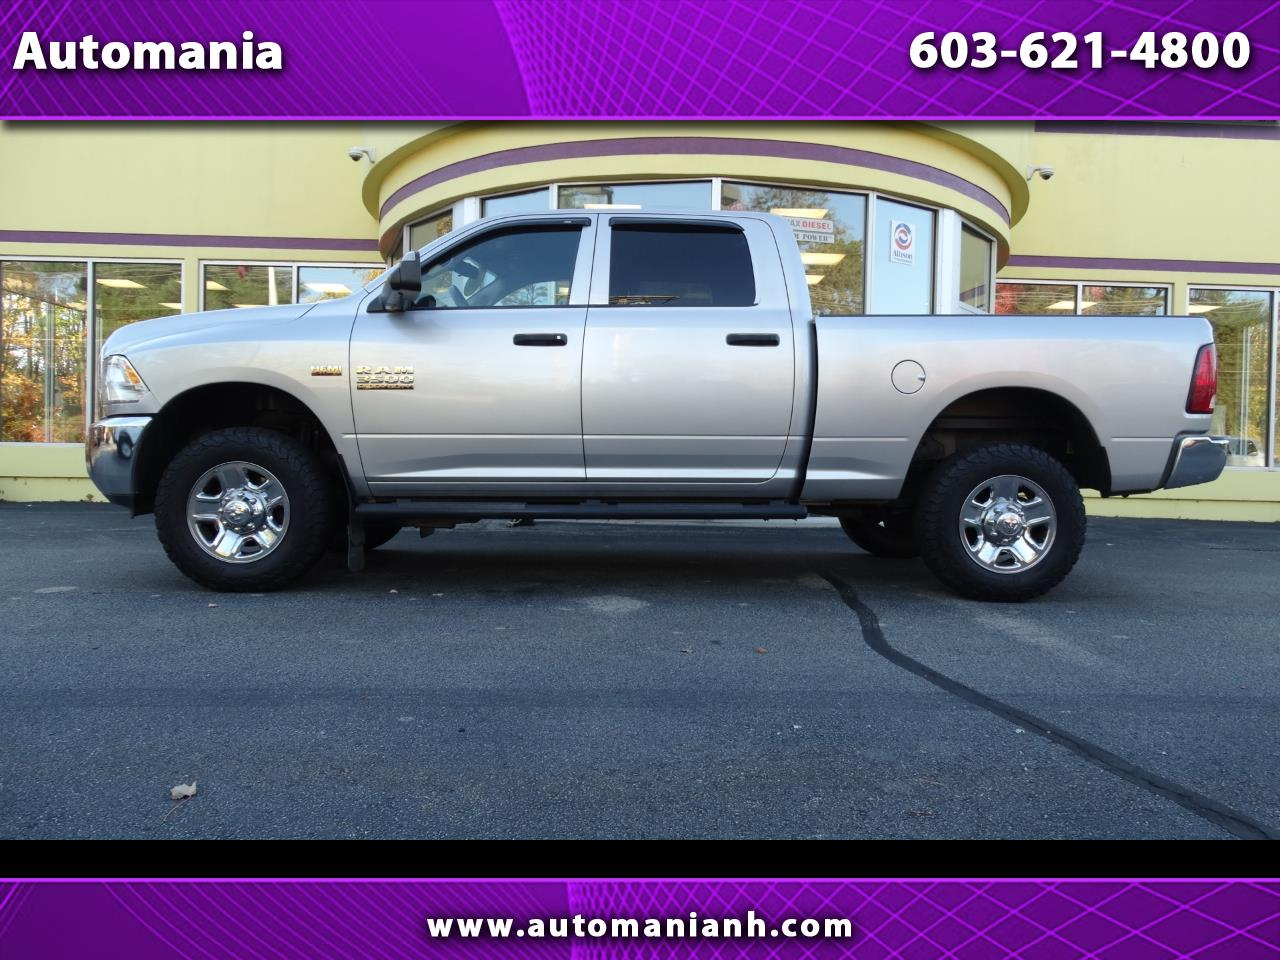 2015 RAM 3500 CREW CAB 1 TON 3500 HEMI WITH BACK UP CAMERA 4X4